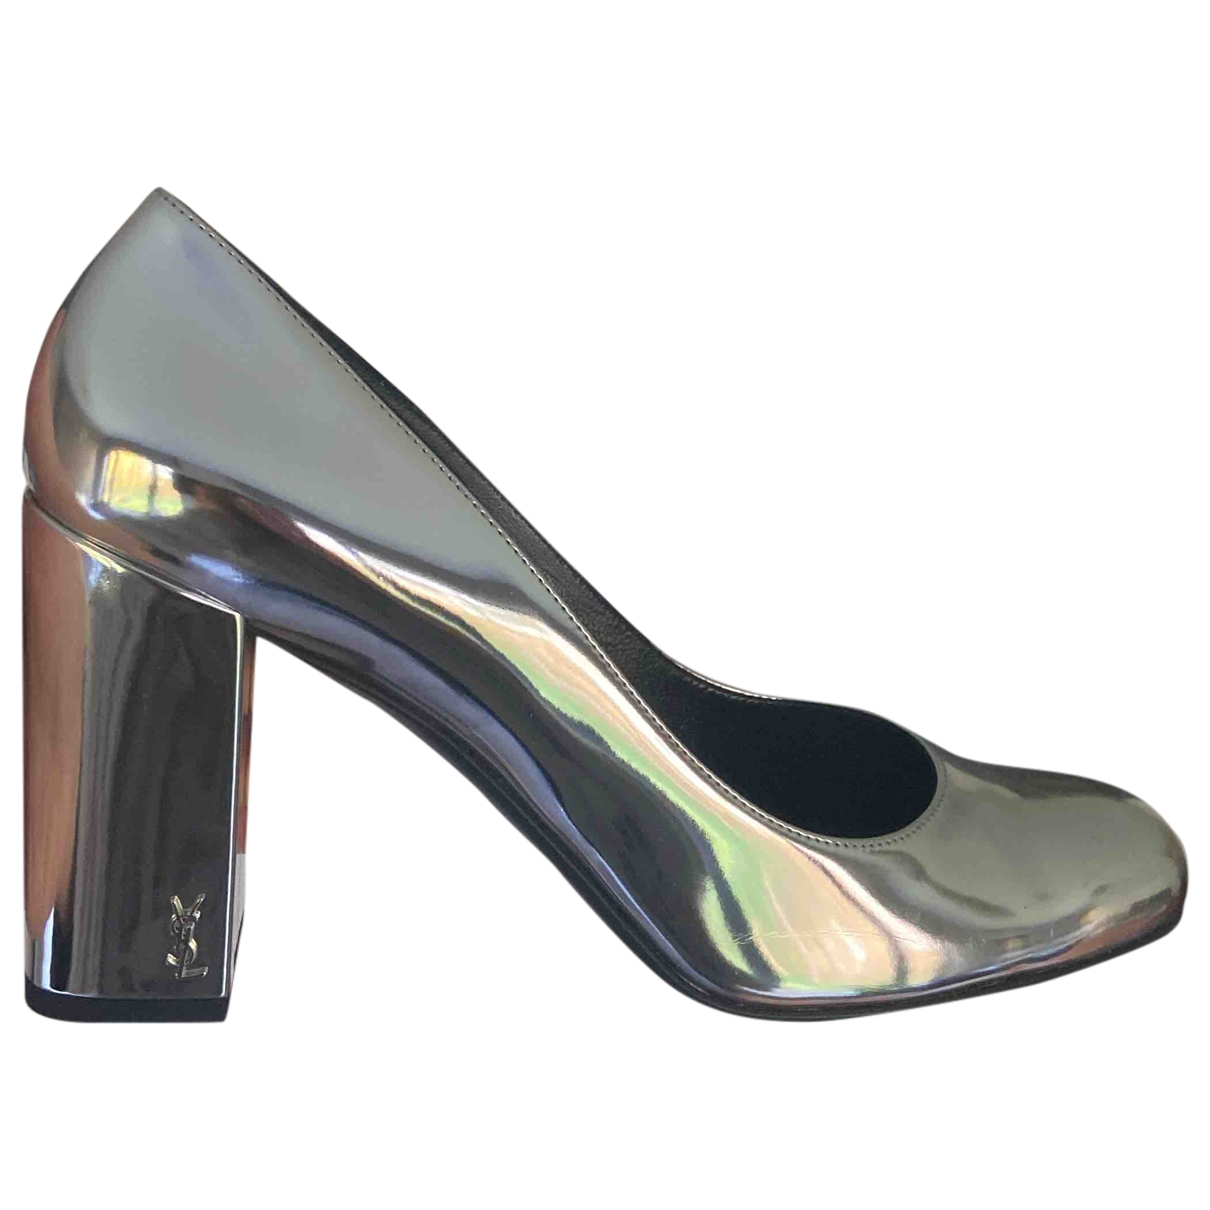 Saint Laurent \N Pumps in  Silber Lackleder